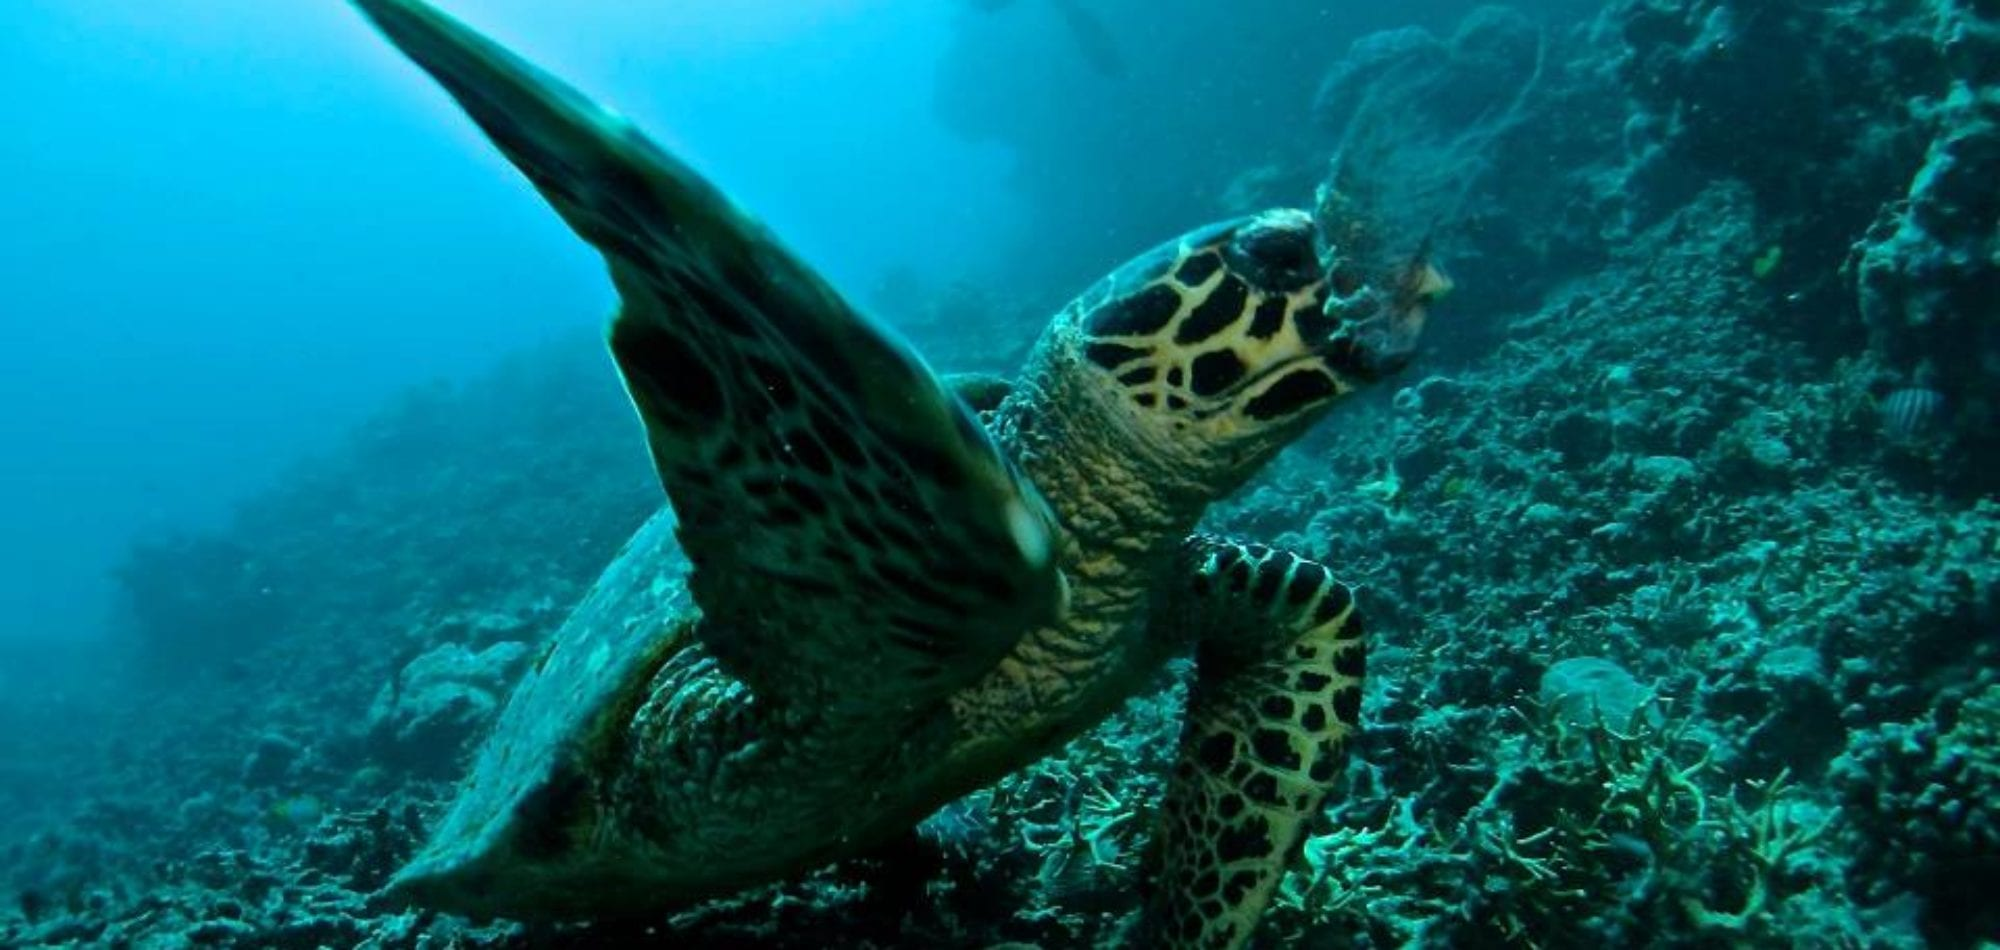 Cairns scuba diving day tour - Green Turtle, Great Barrier Reef